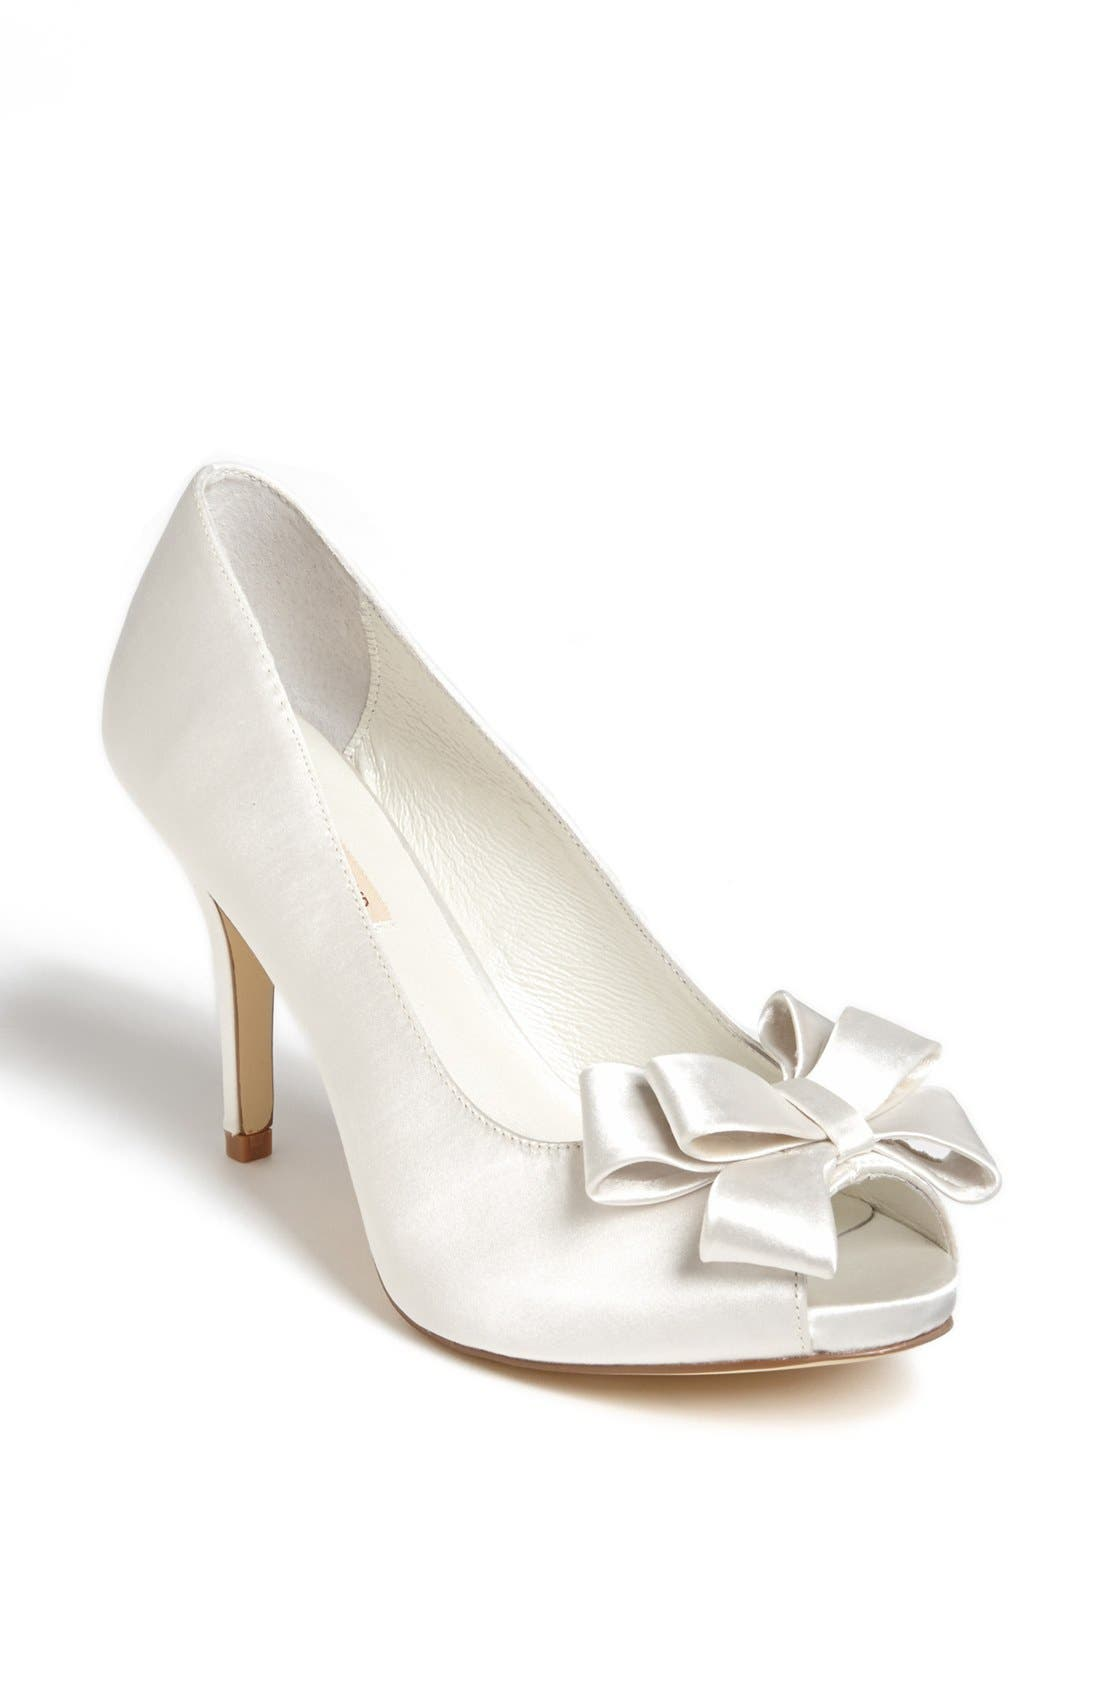 Bow Peep Toe Pump,                         Main,                         color, Ivory